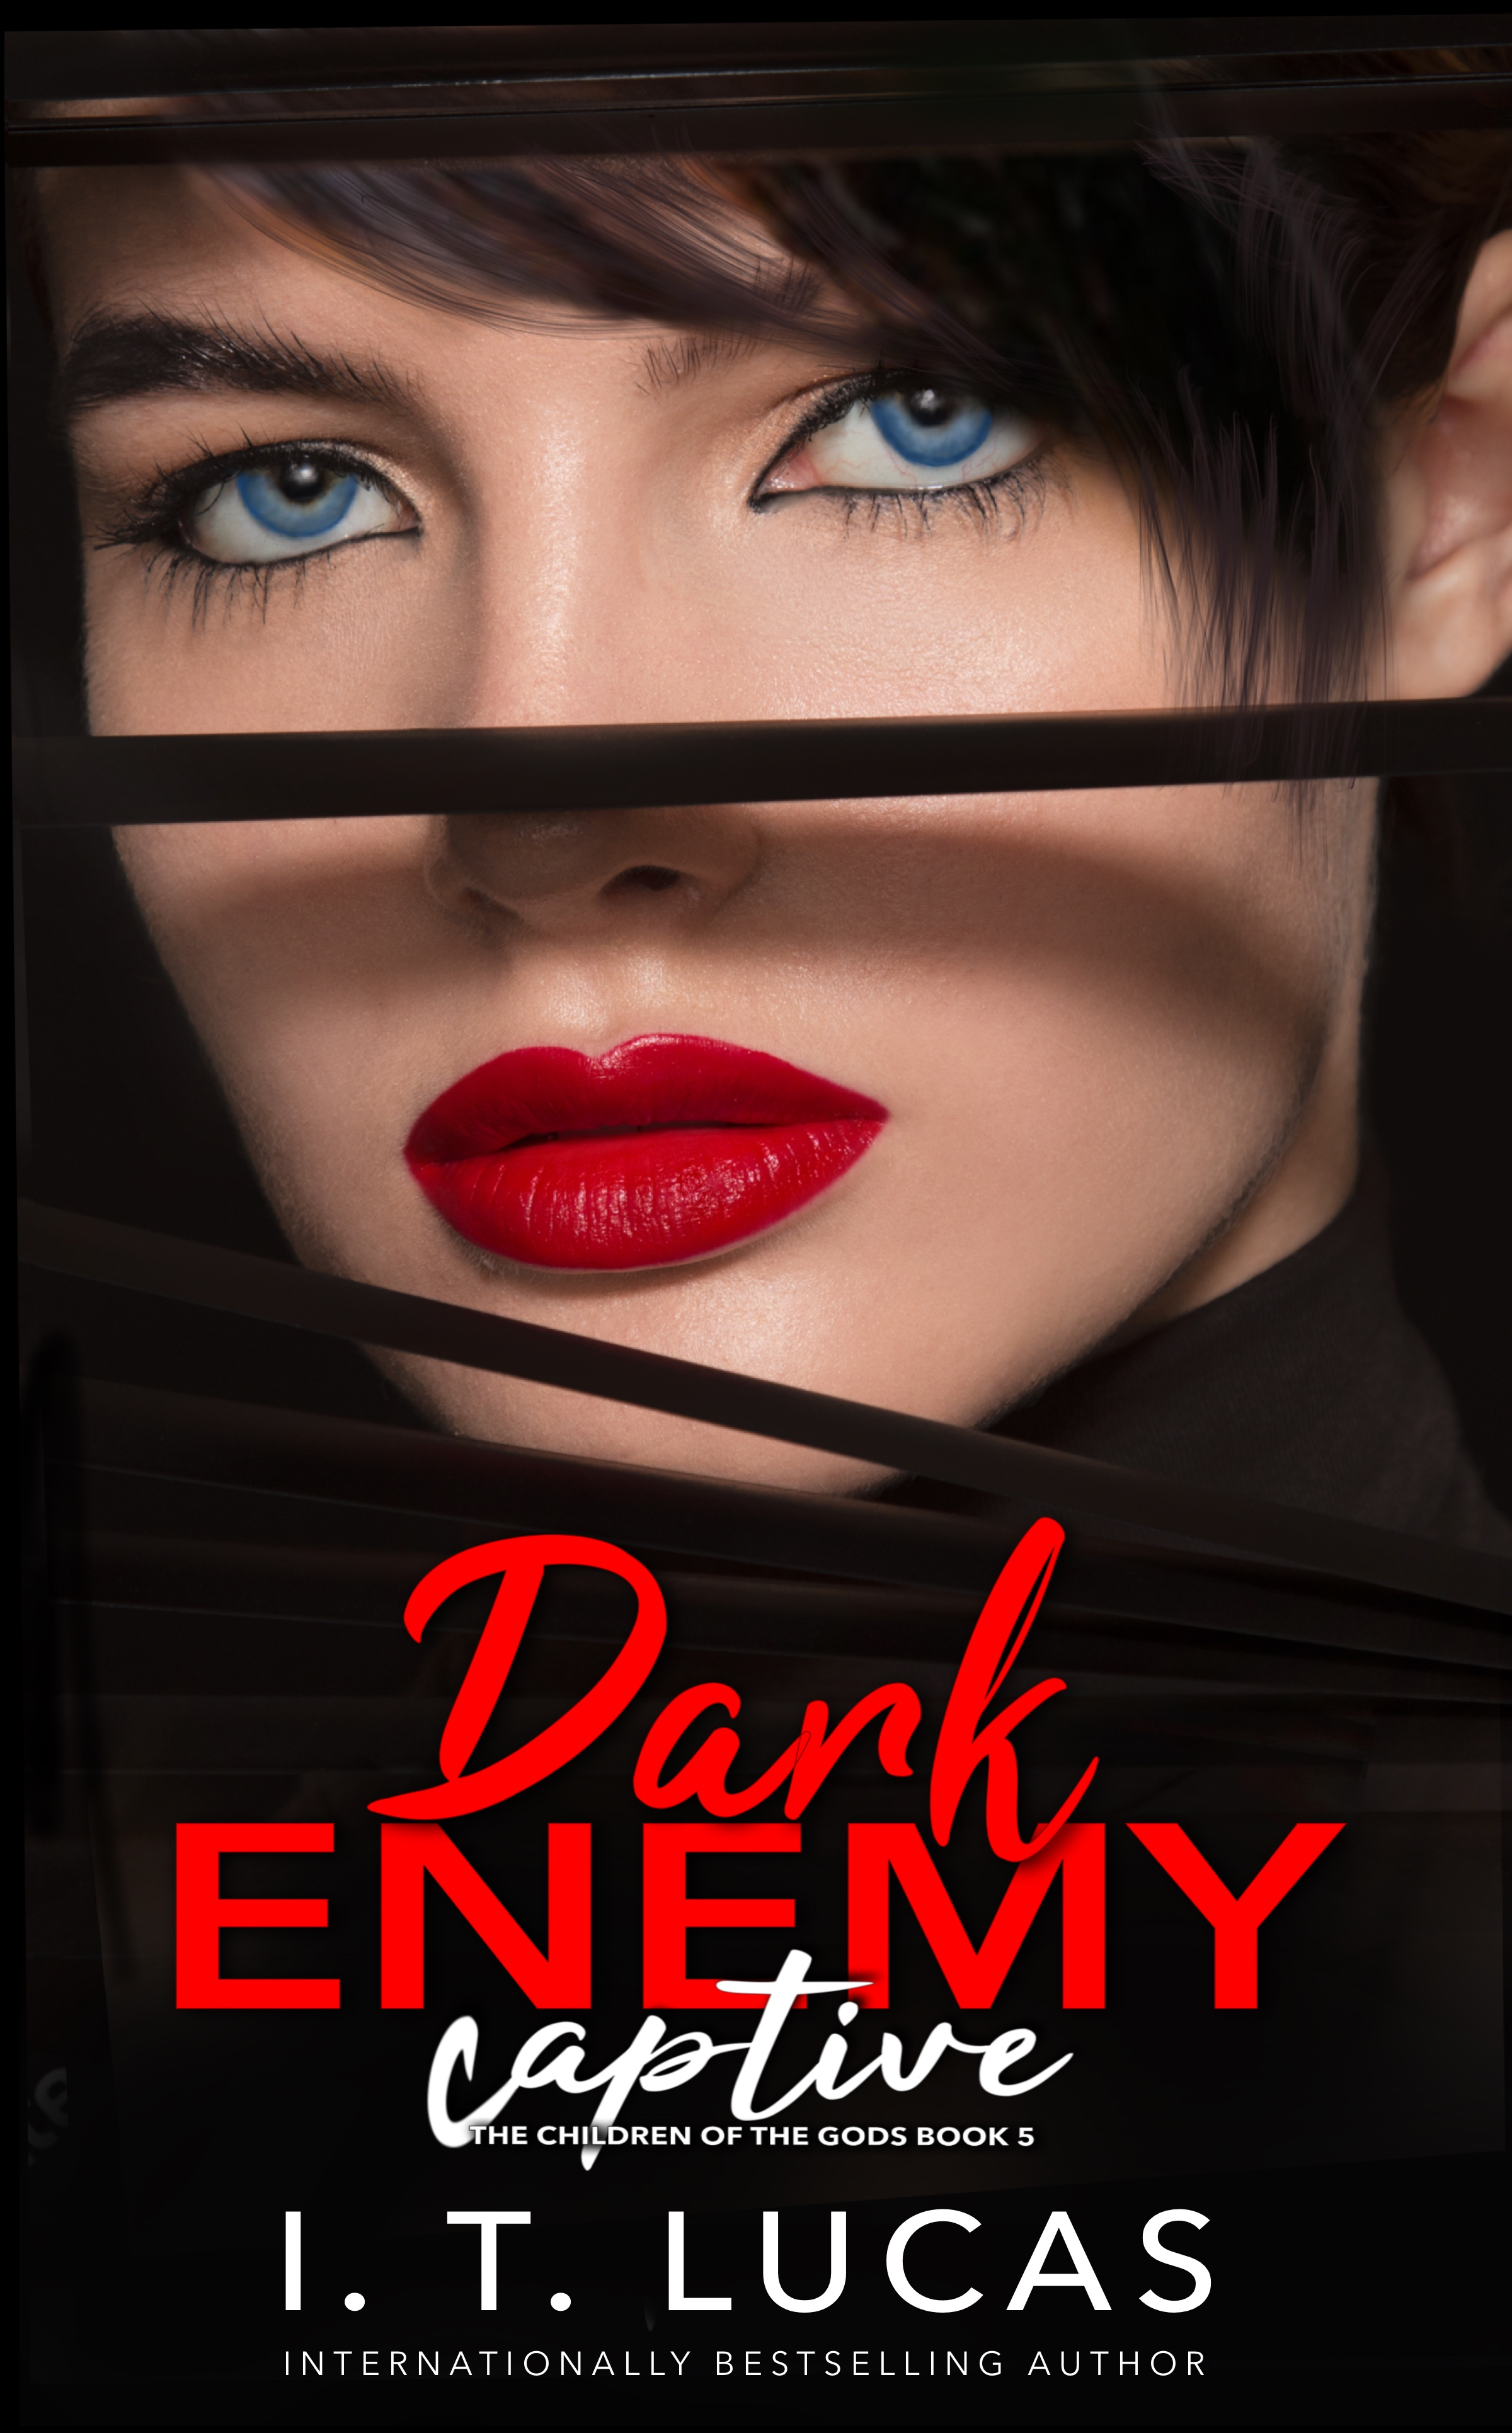 Dark Enemy Captive (The Children of the Gods, #5)